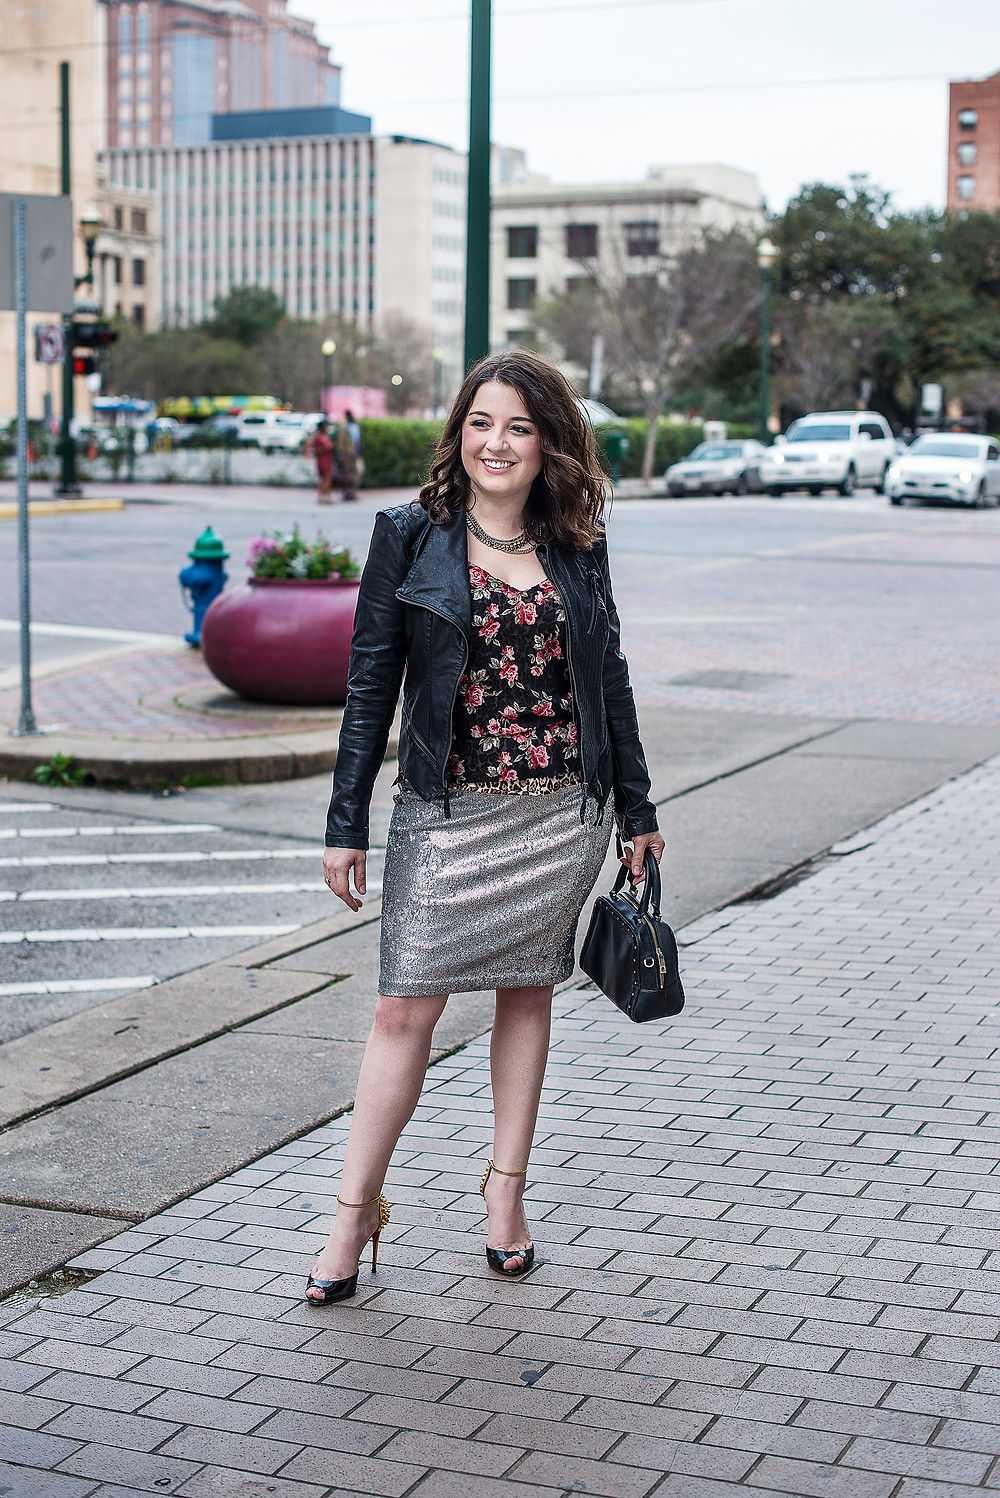 Personal Stylist in Houston shares how to wear a sequin skirt